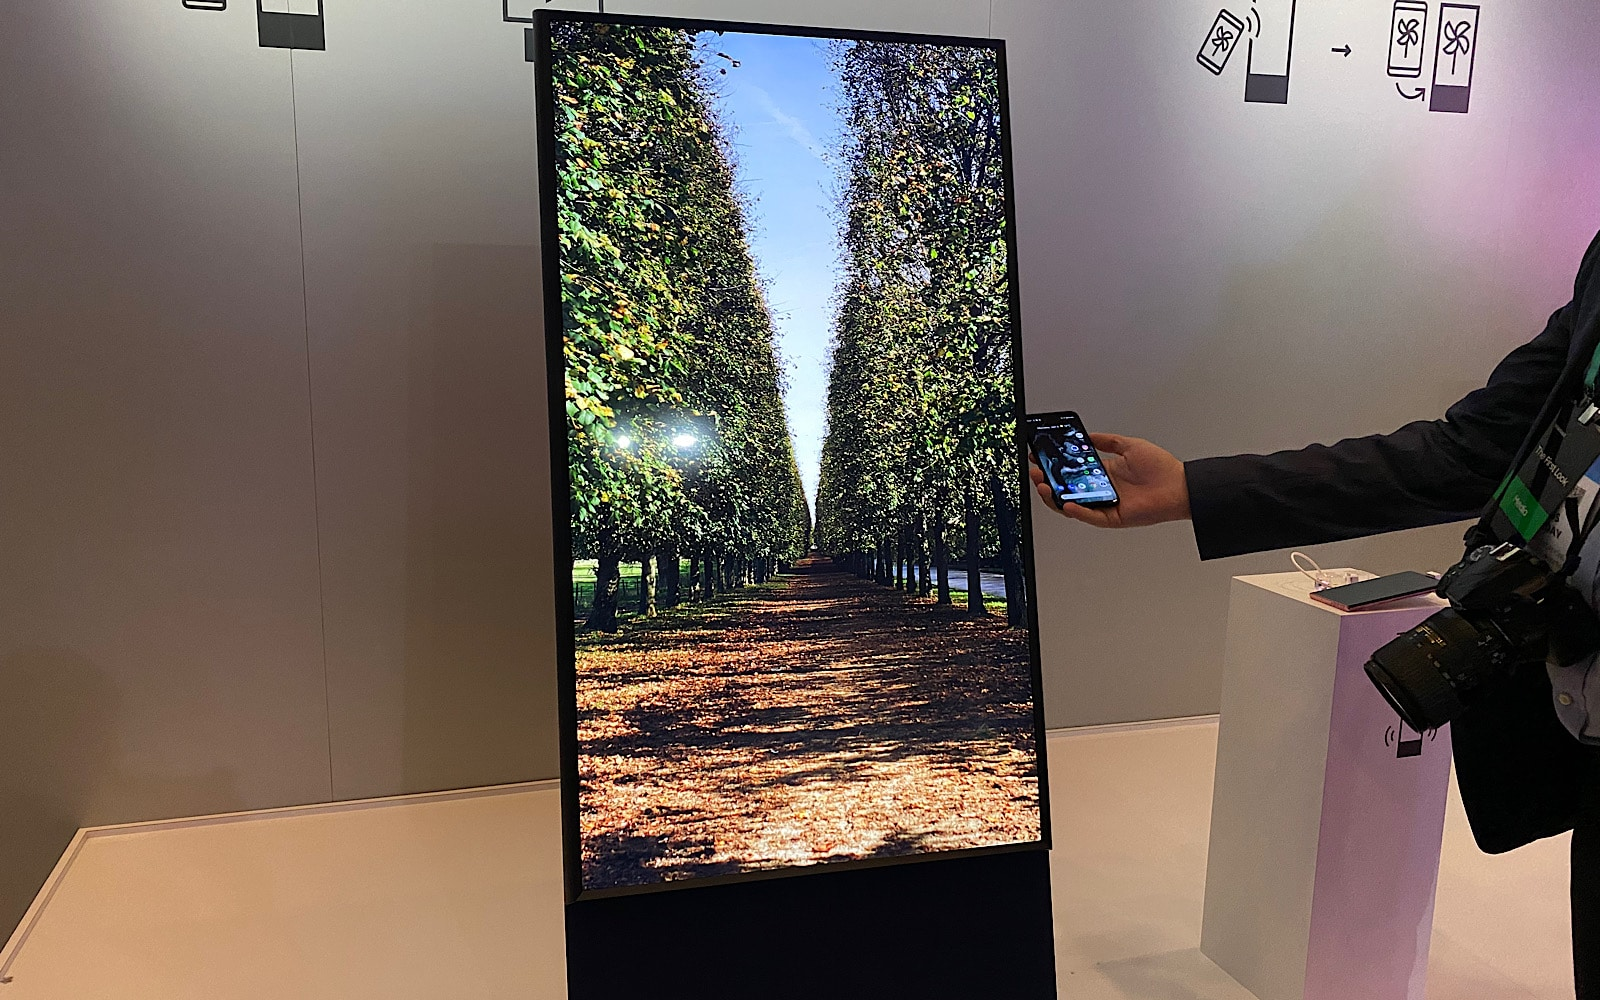 Samsung's The Sero, a vertical TV at CES 2020